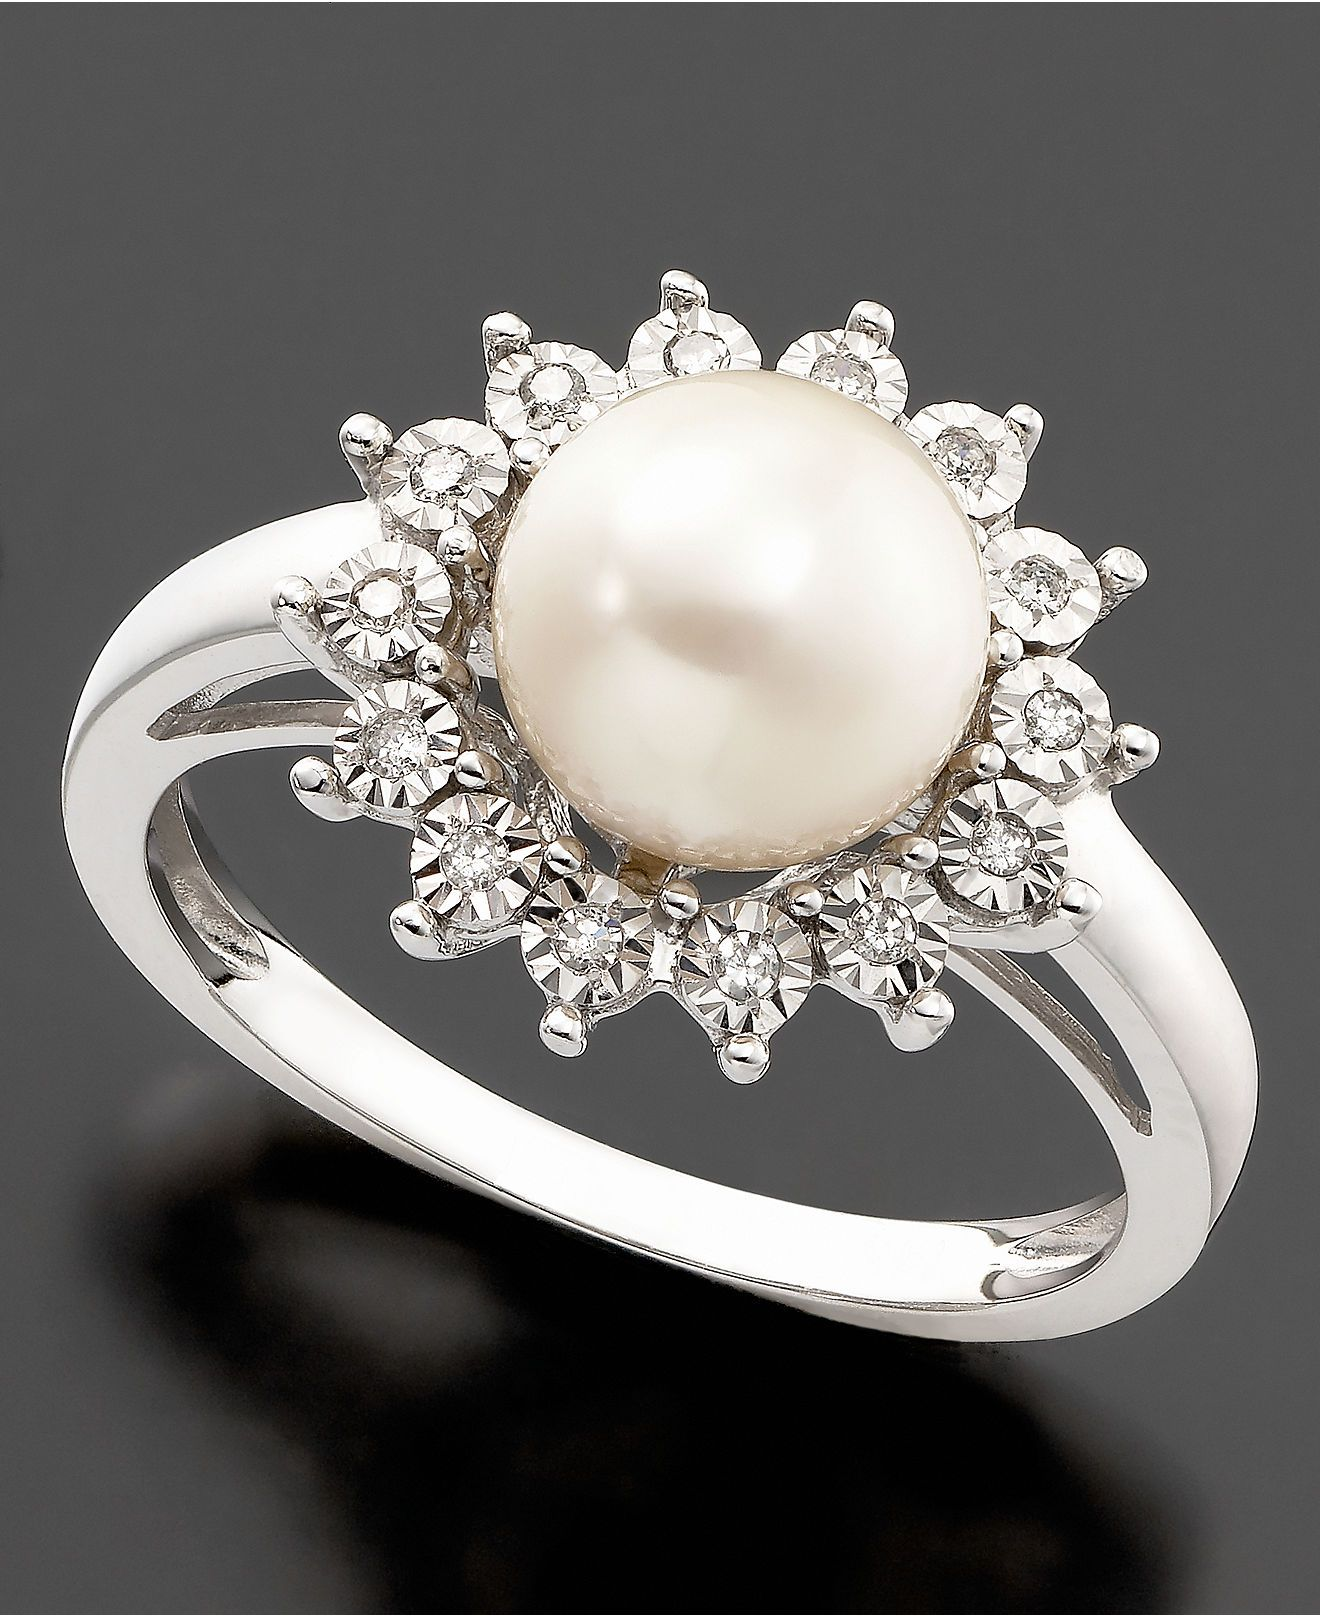 10k White Gold Ring, Cultured Freshwater Pearl & Diamond Accent